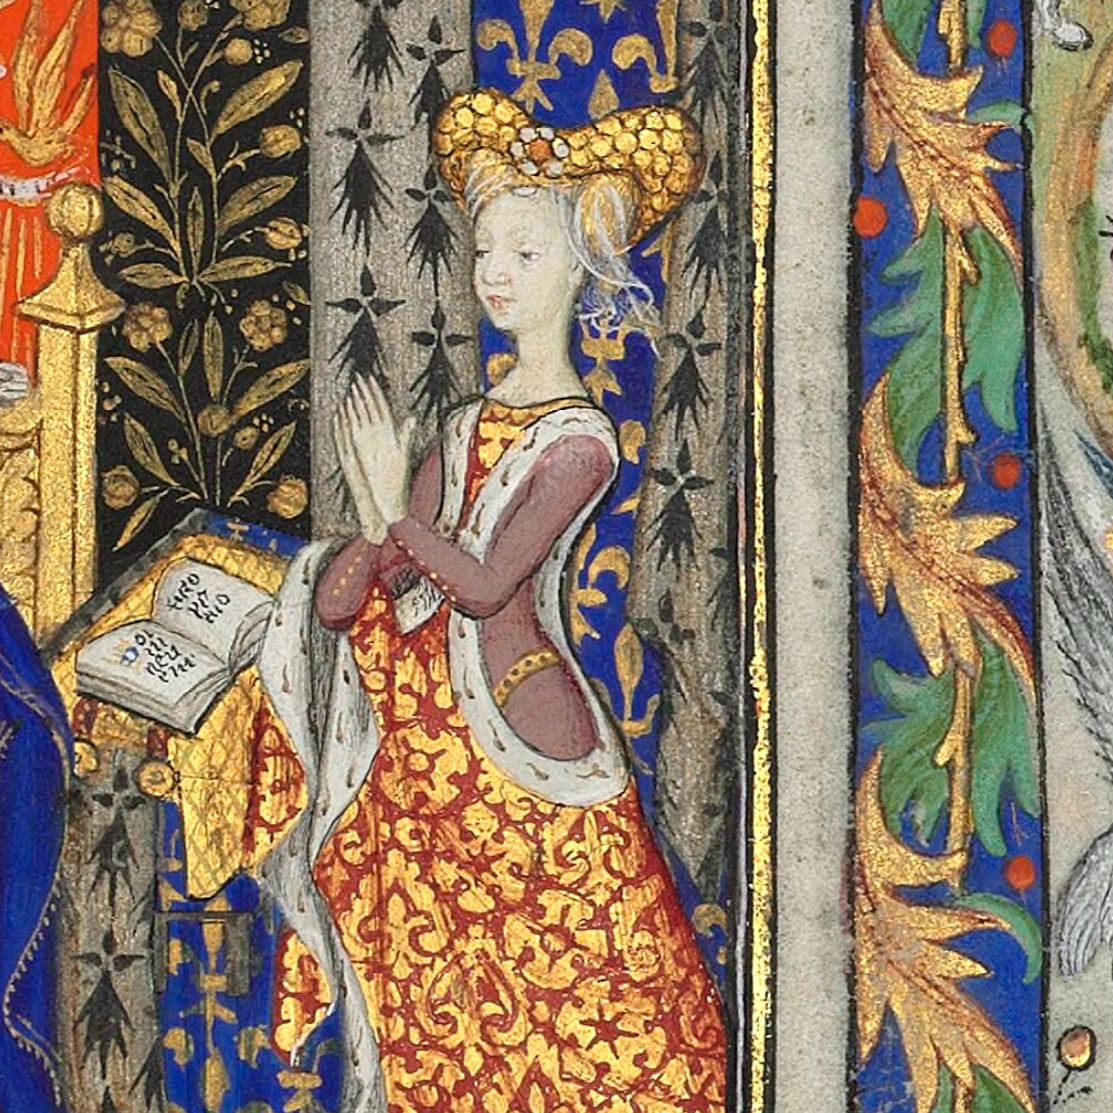 Margaret, Countess of Vertus French countess